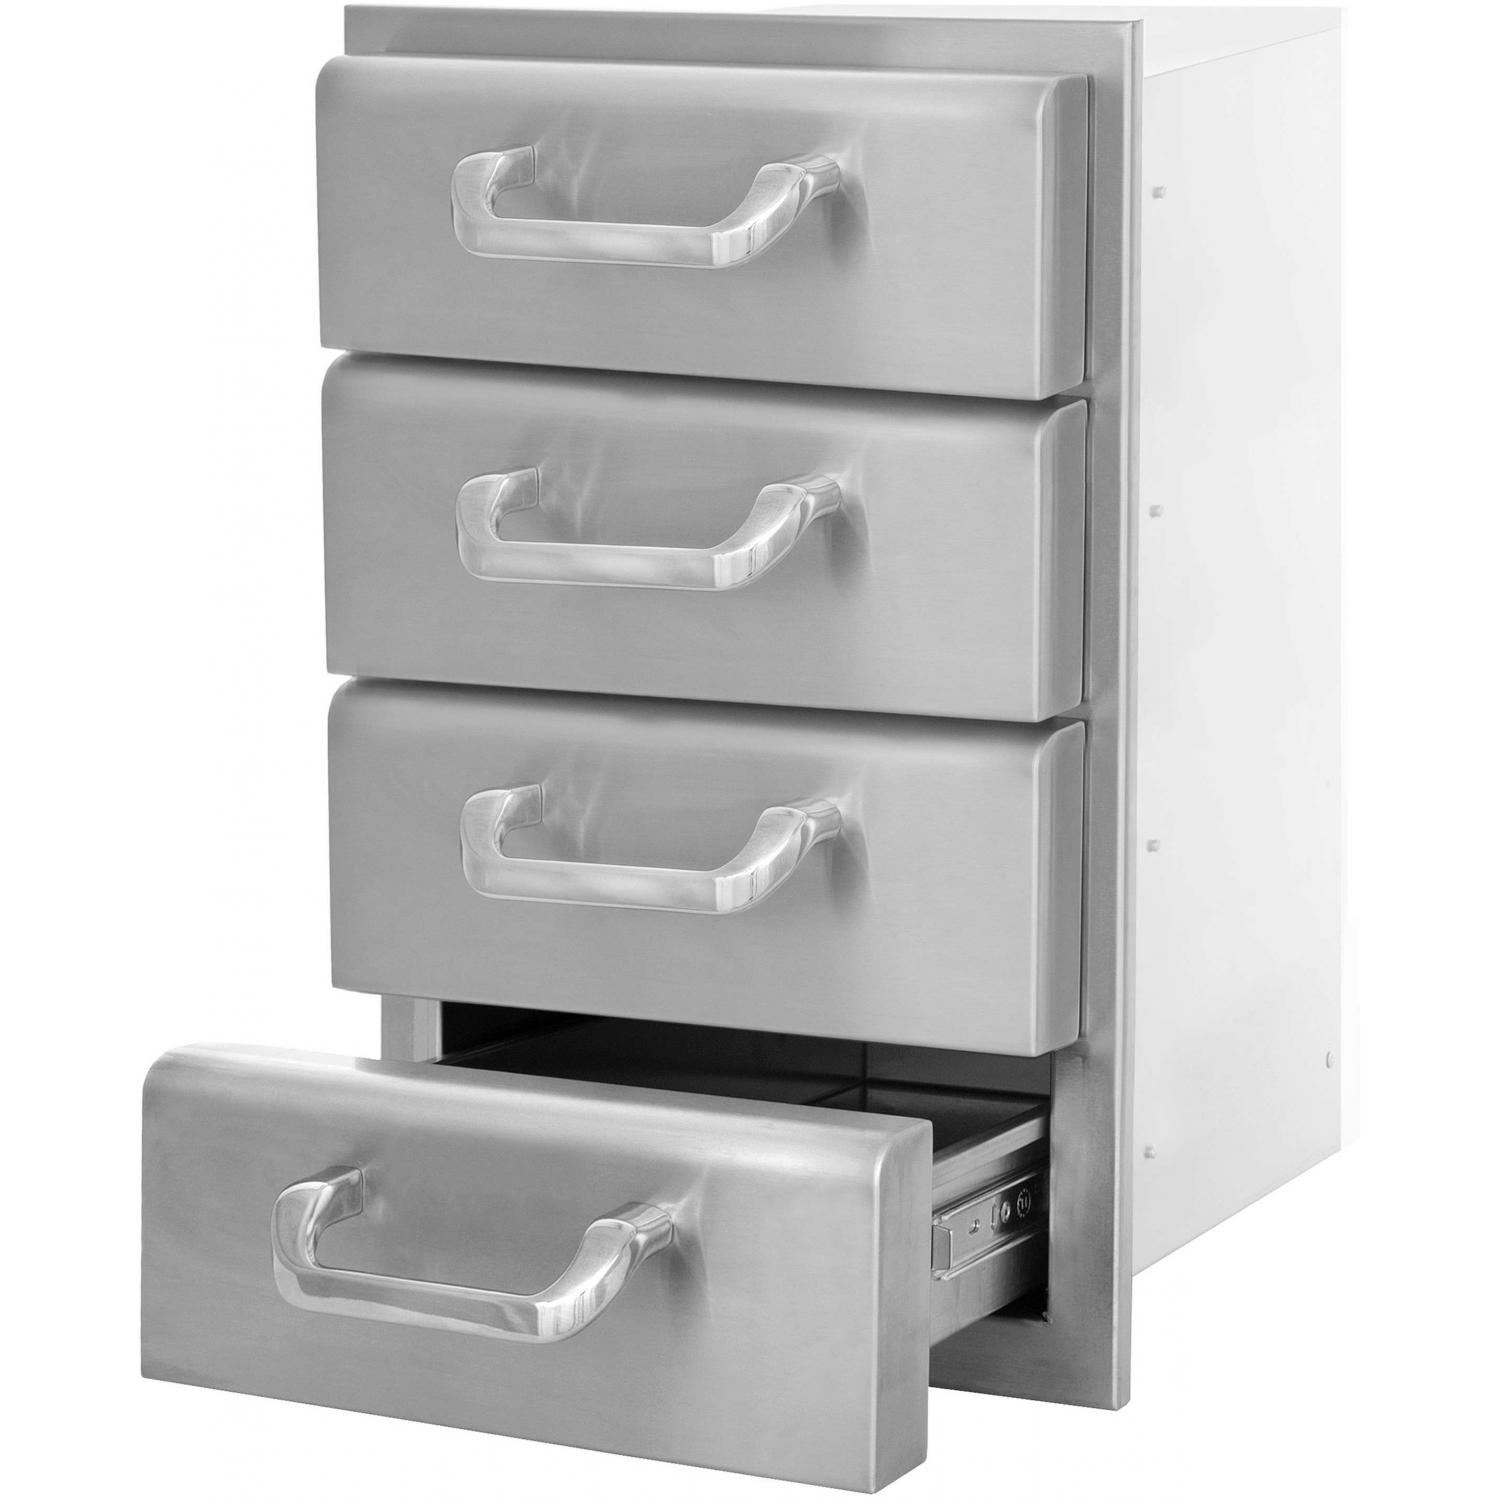 Picture of BBQGuys.com Kingston Raised Series 14 Inch Stainless Steel Quadruple Access Drawer